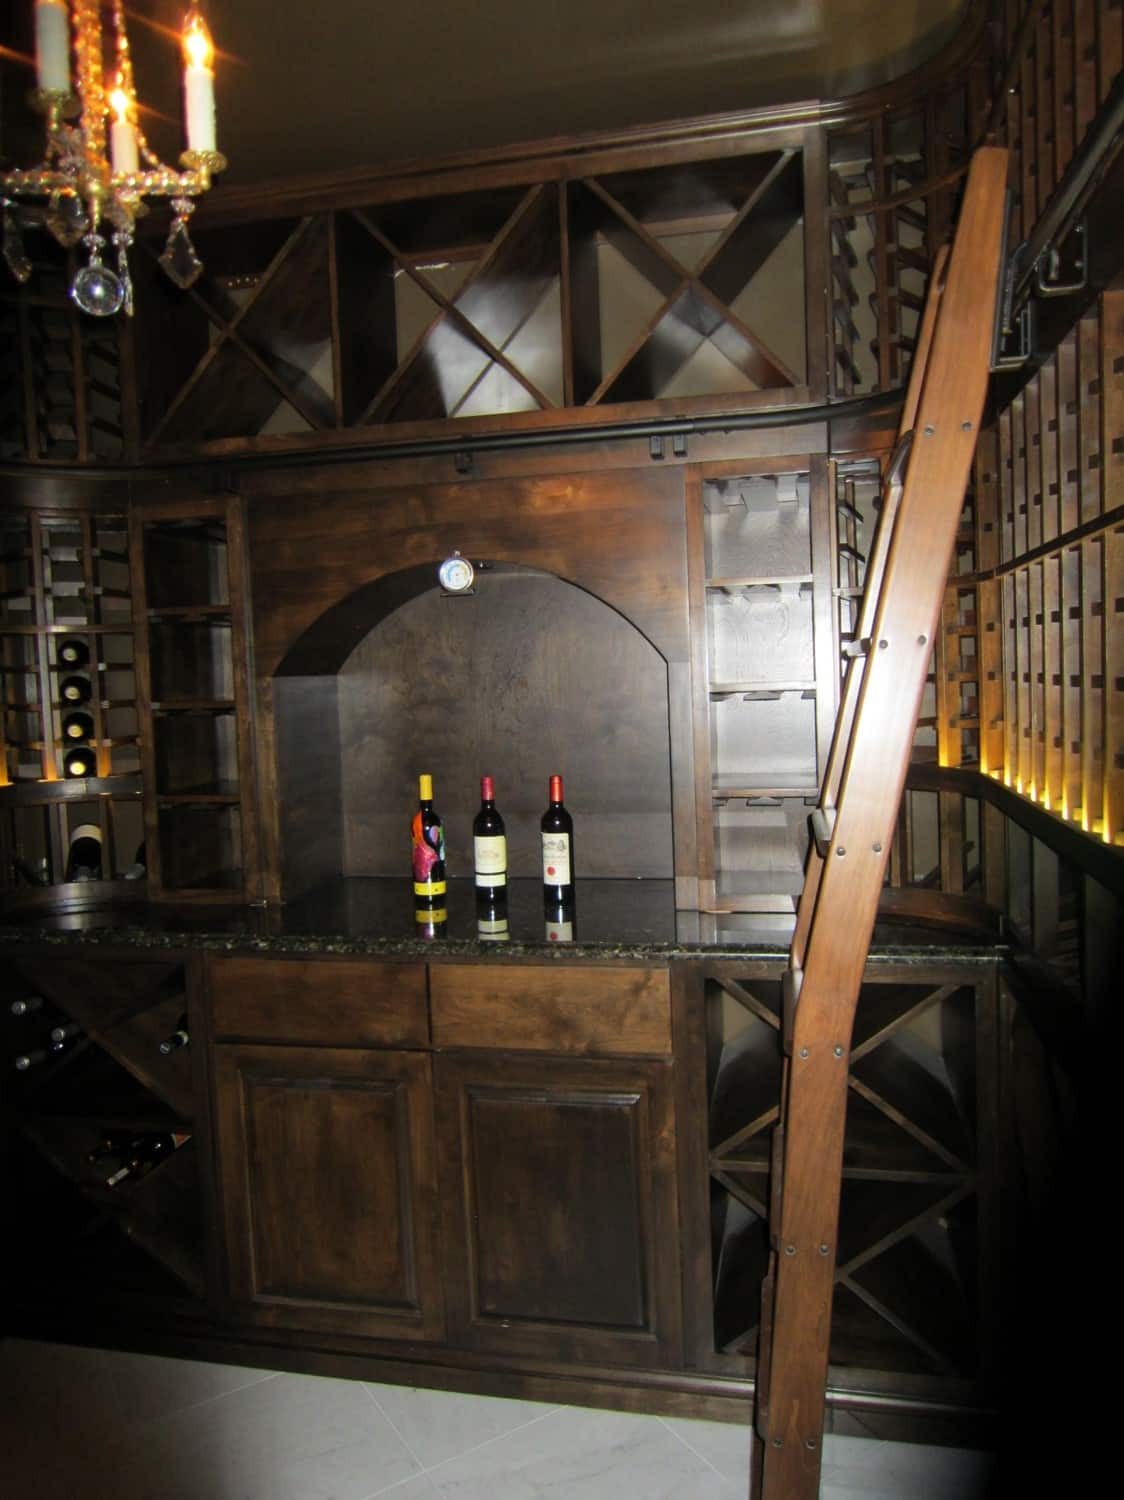 New Orleans Custom Wine Cellar Installation Designed for a Carriage House in the French Quarter Small